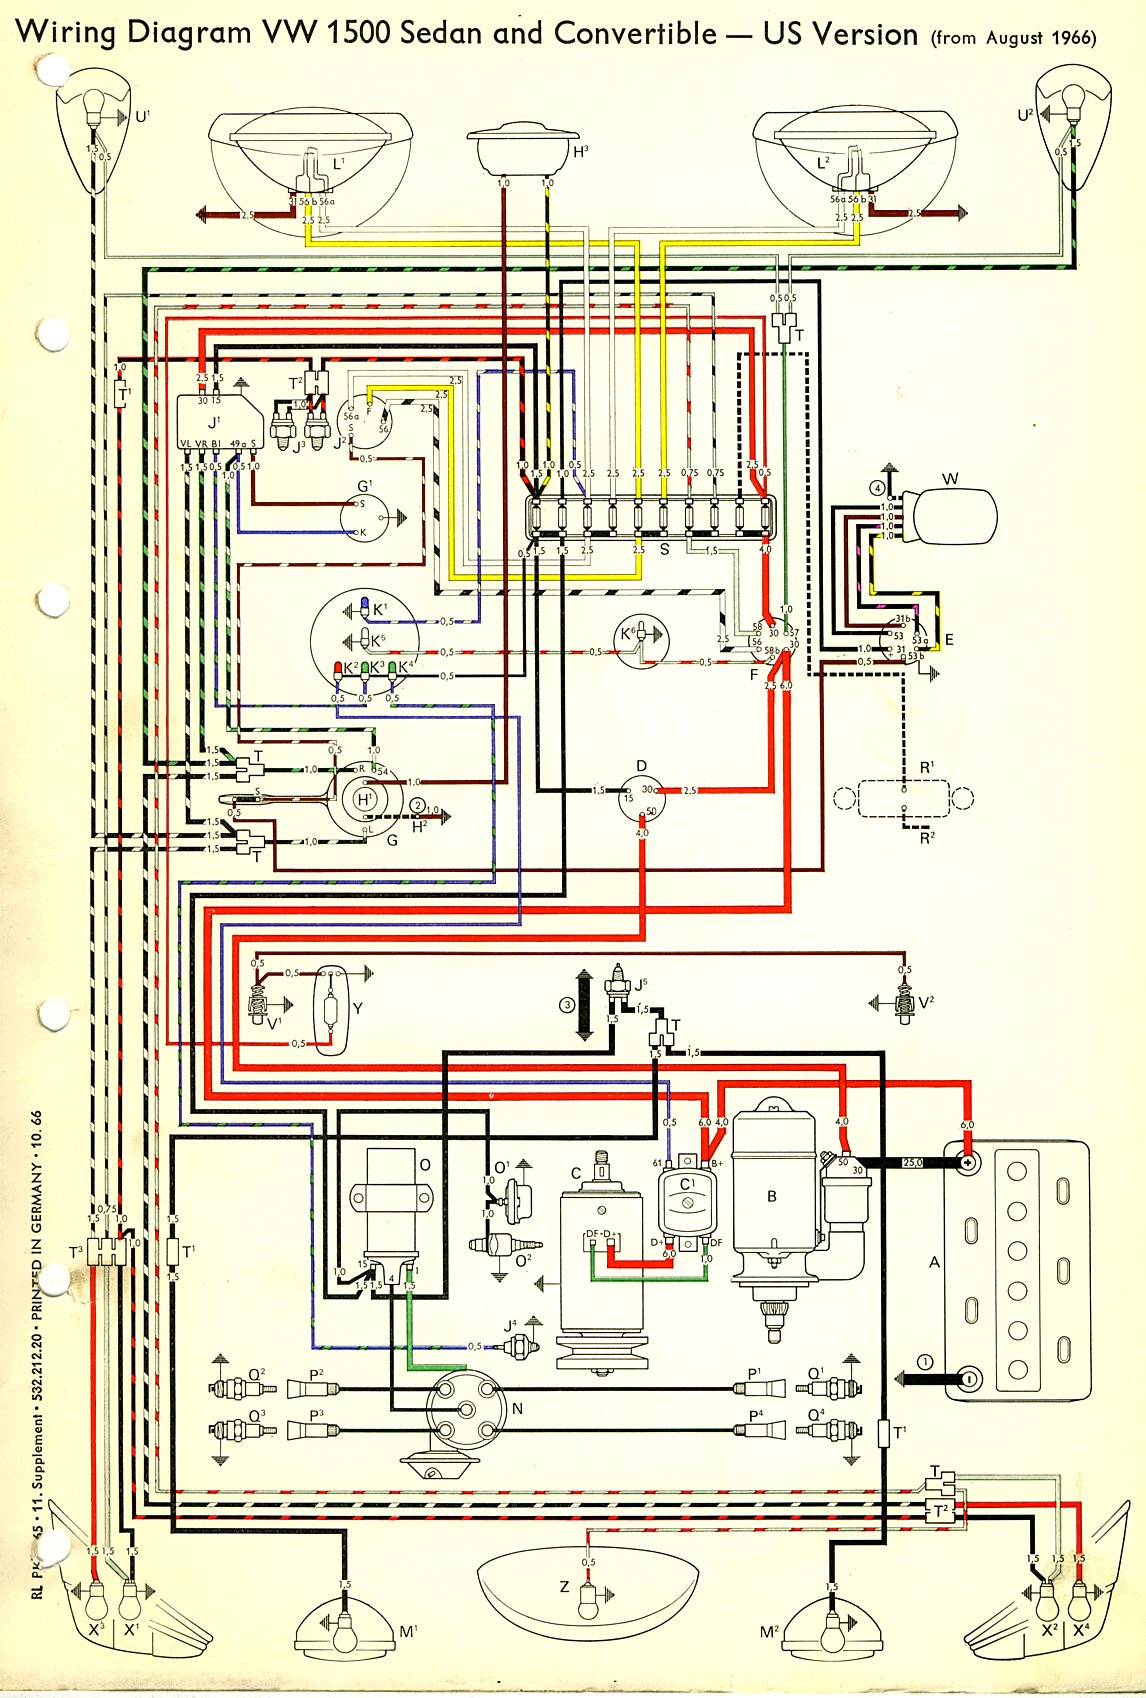 DIAGRAM] 69 71 Volkswagen Beetle Wiring Diagram FULL Version HD Quality Wiring  Diagram - TYPEMR16WIRING.PLURIFIT.FRWiring And Fuse Database